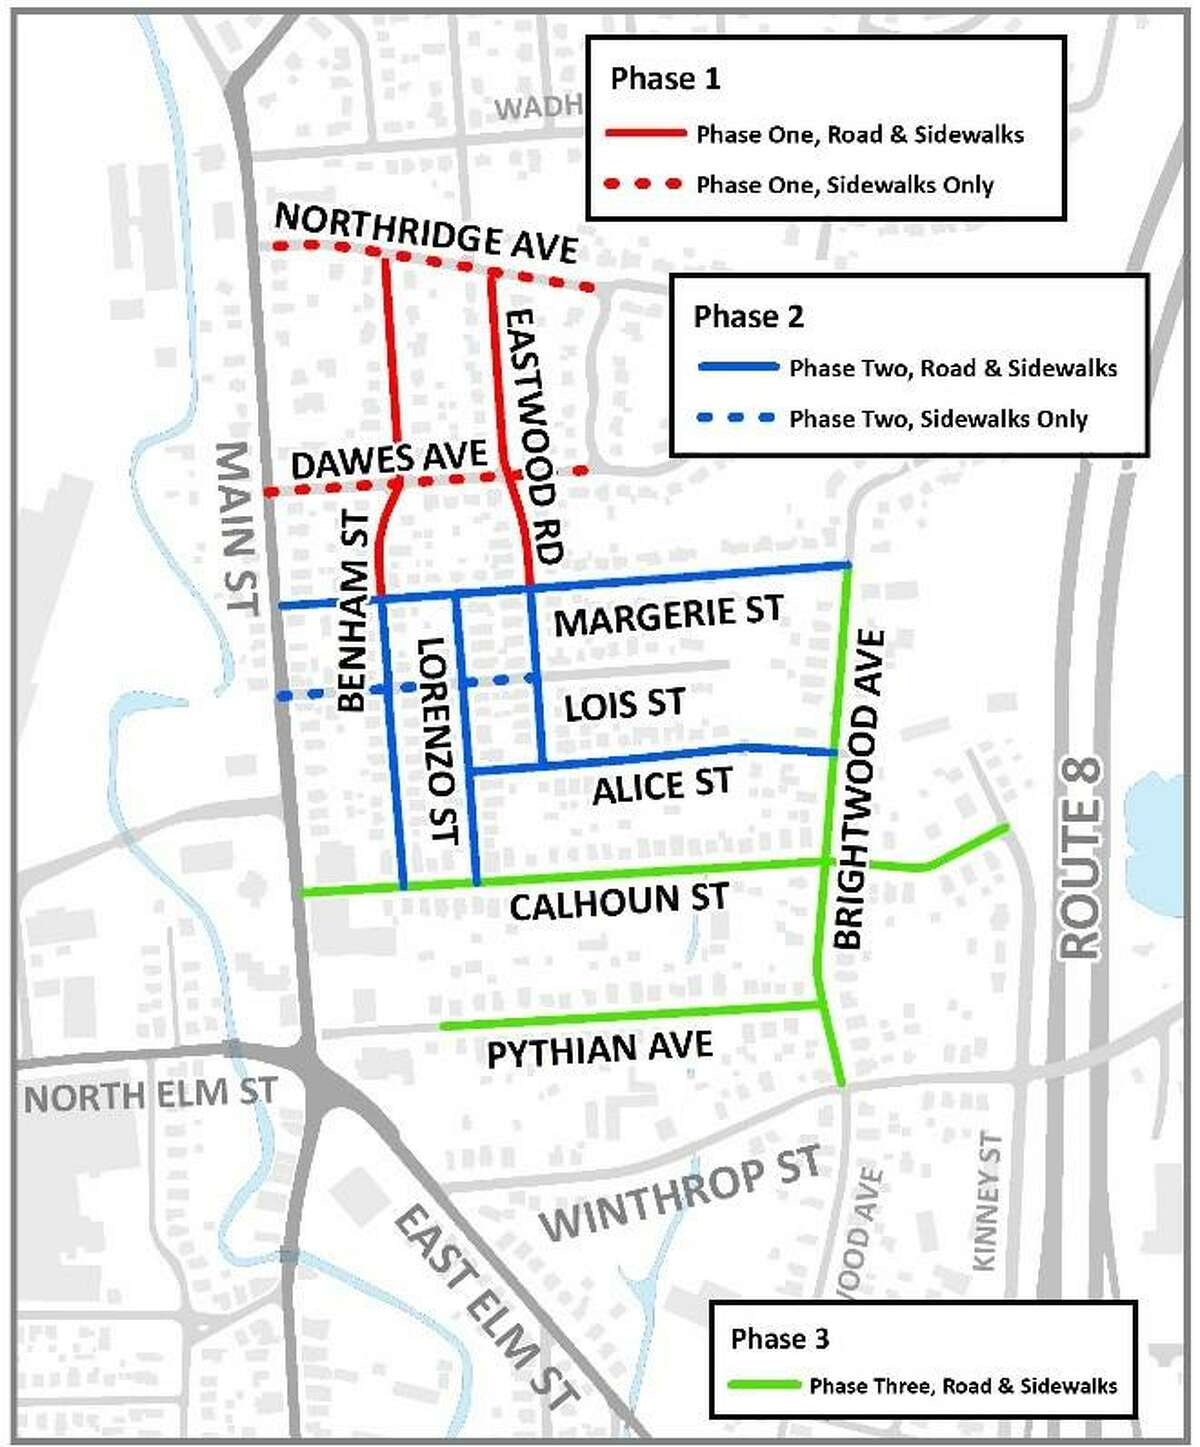 """City officials said this week that road construction activities are expanding into Phase 2 of the """"City North Reconstruction"""" project."""